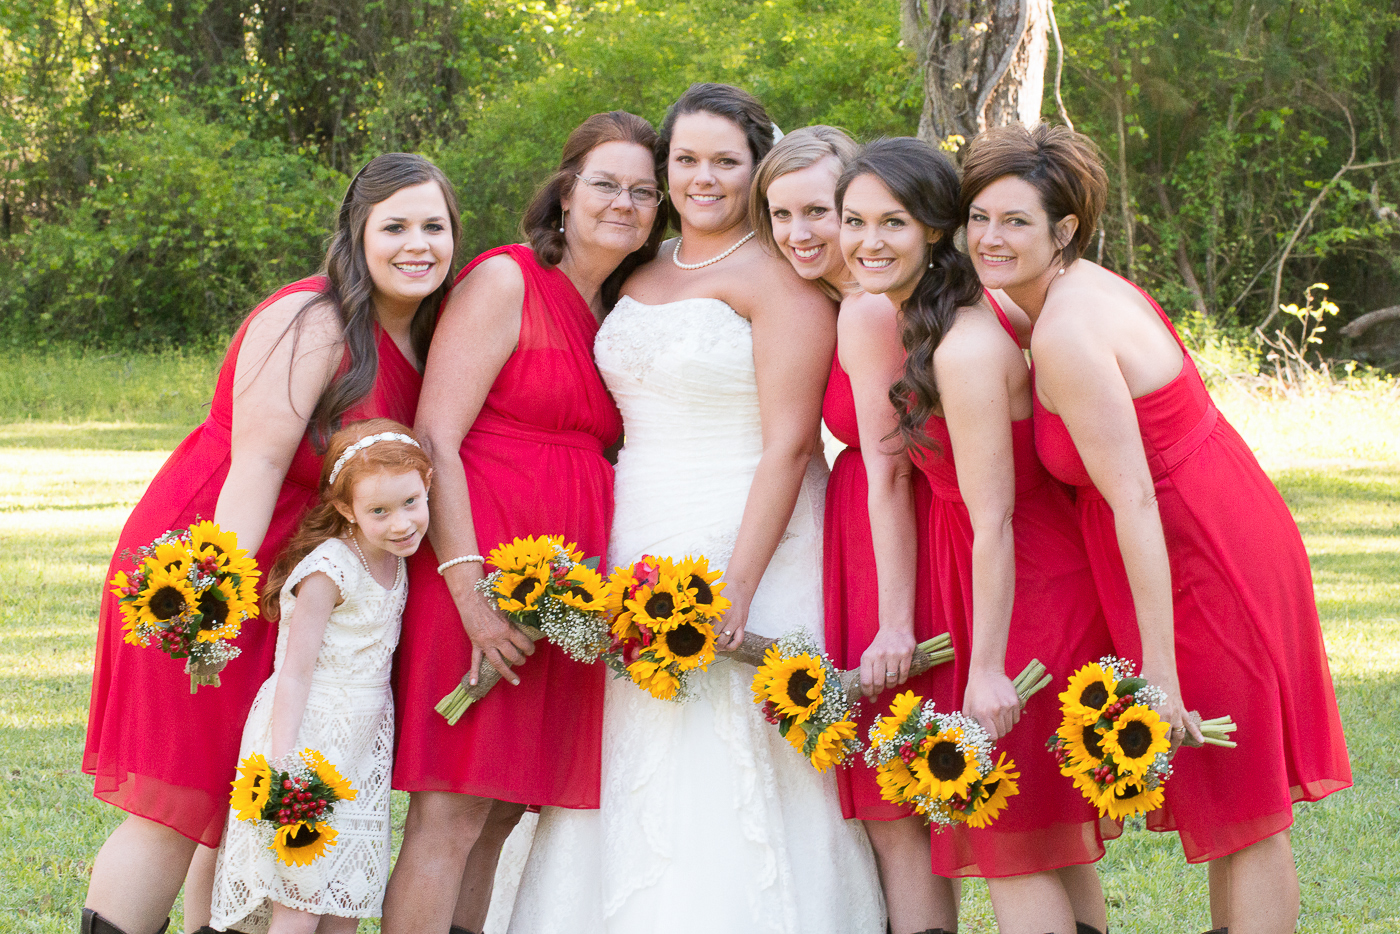 Red bridesmaids dresses and sunflowers at Adam's Pond